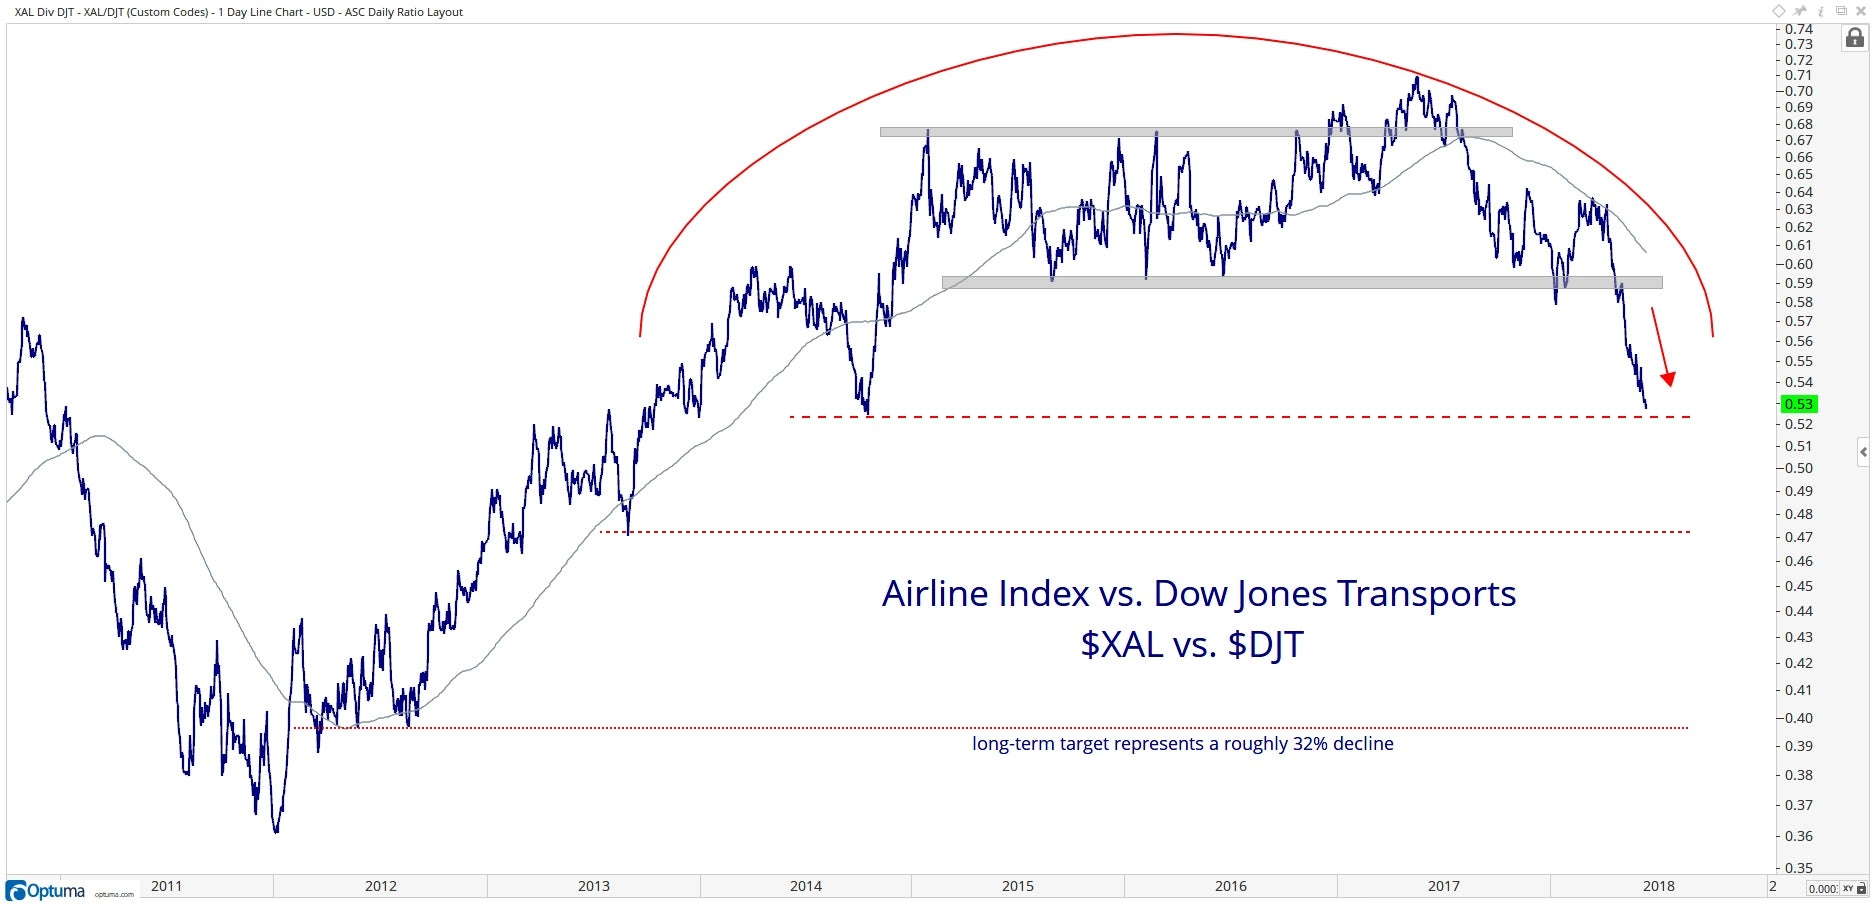 Technical chart showing the performance of the NYSE Arca Airlines Index ($XAL) vs. the Dow Jones Transportation Average ($DJT)